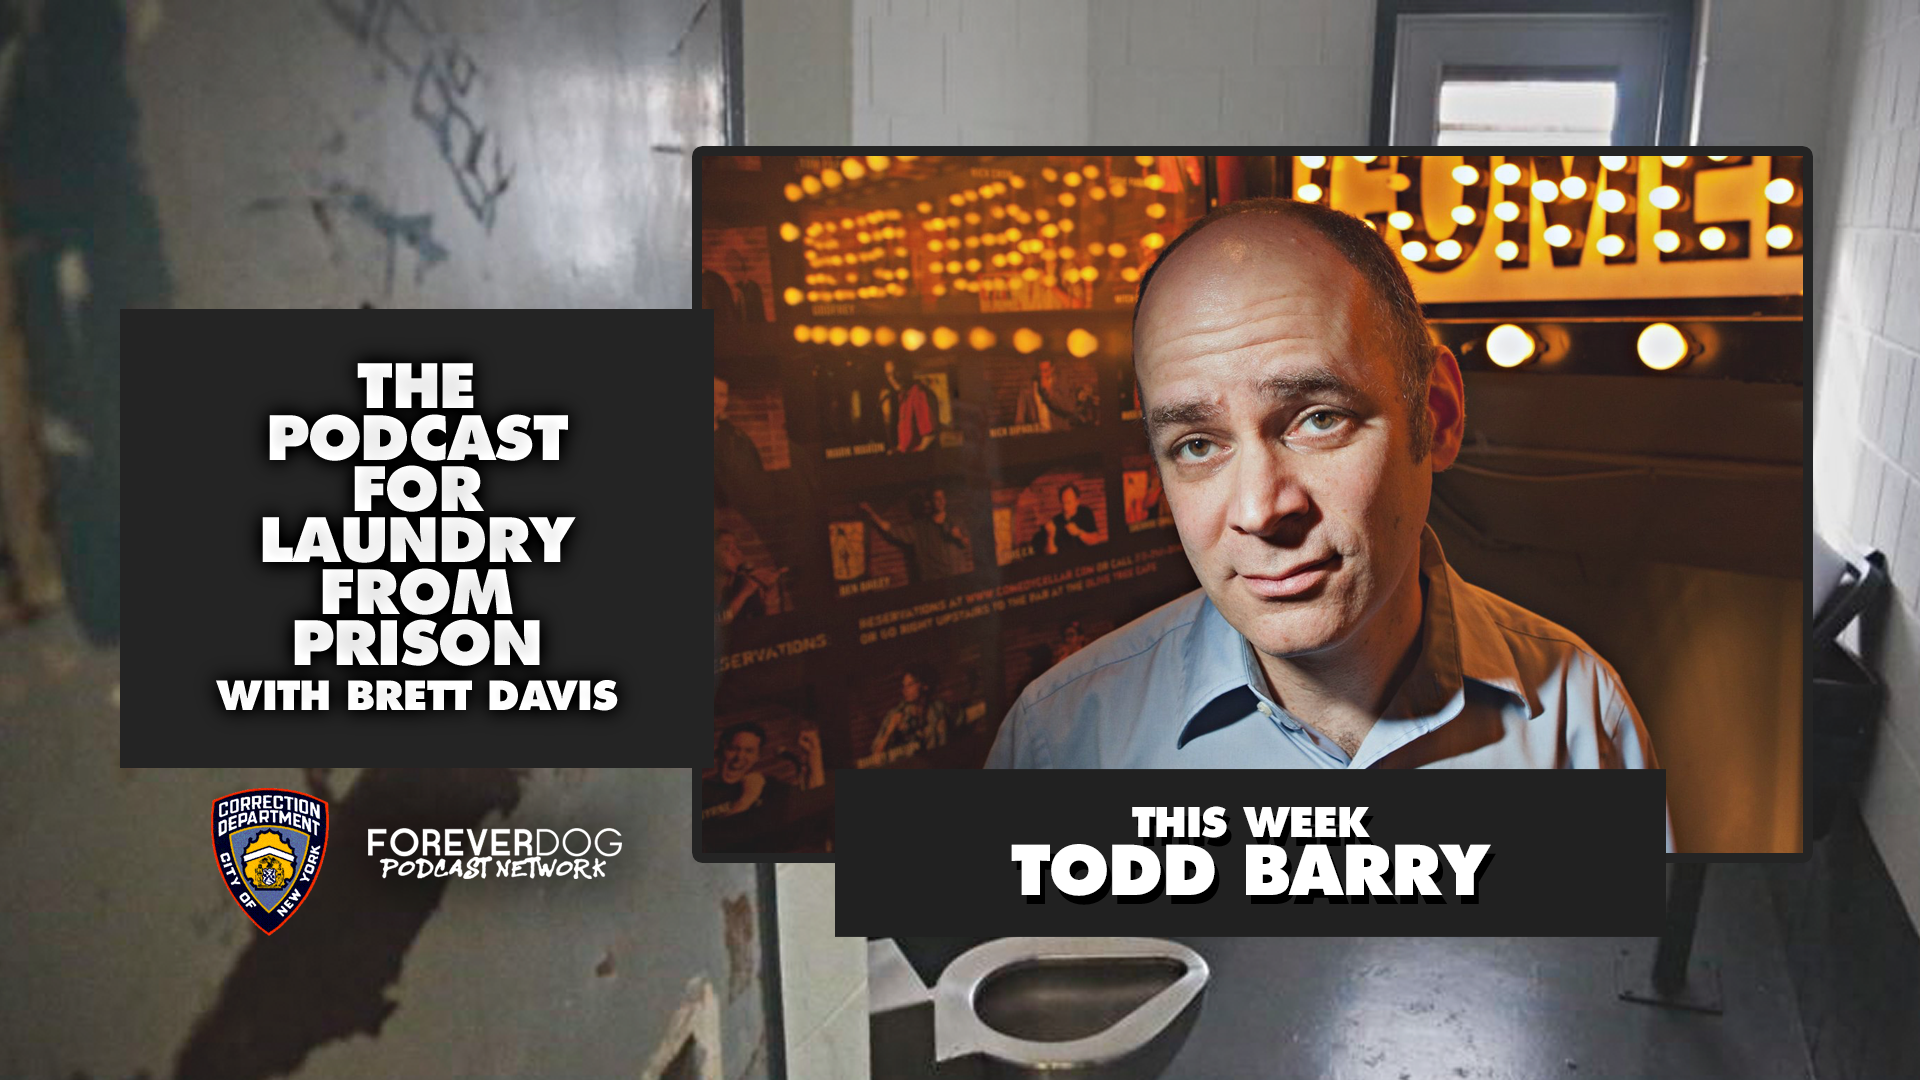 PODCASTflyertoddbarry.png